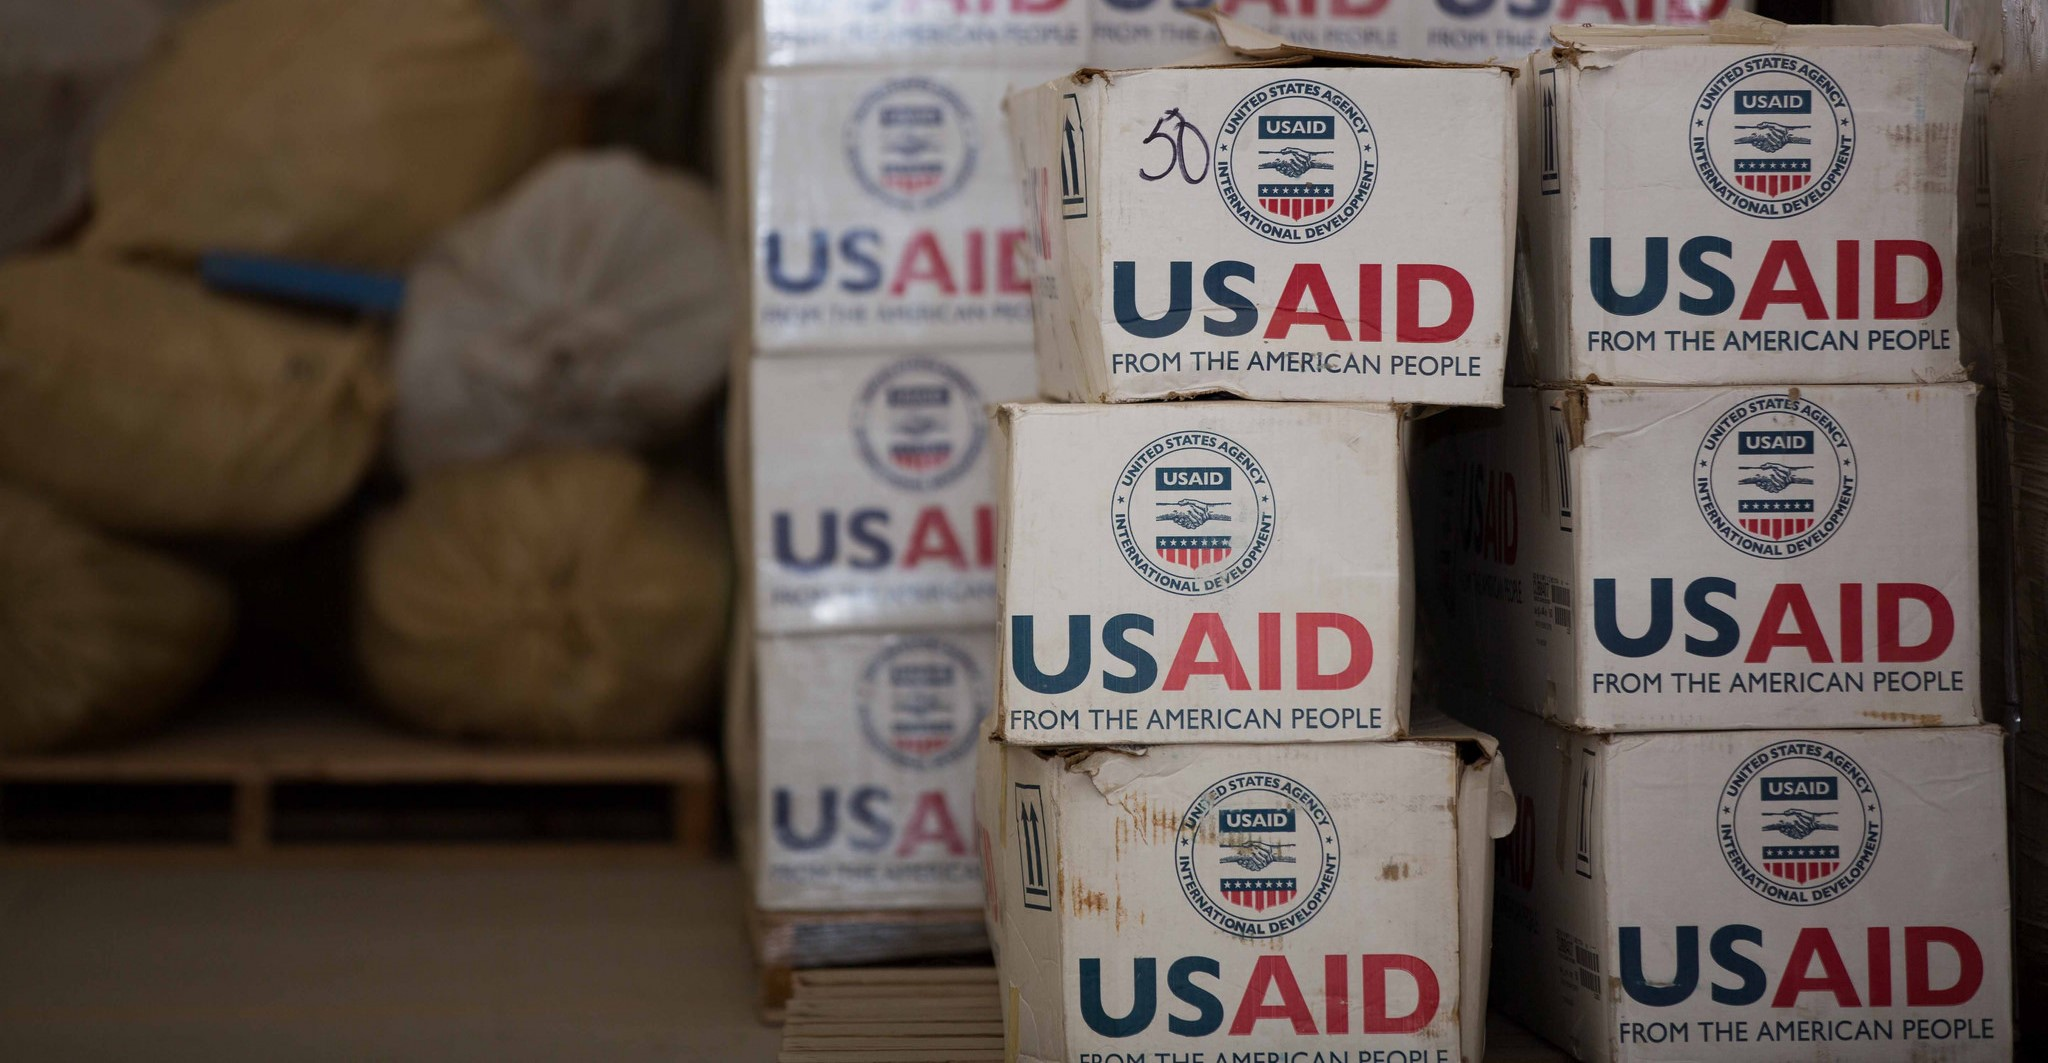 Photo: Flickr/USAID